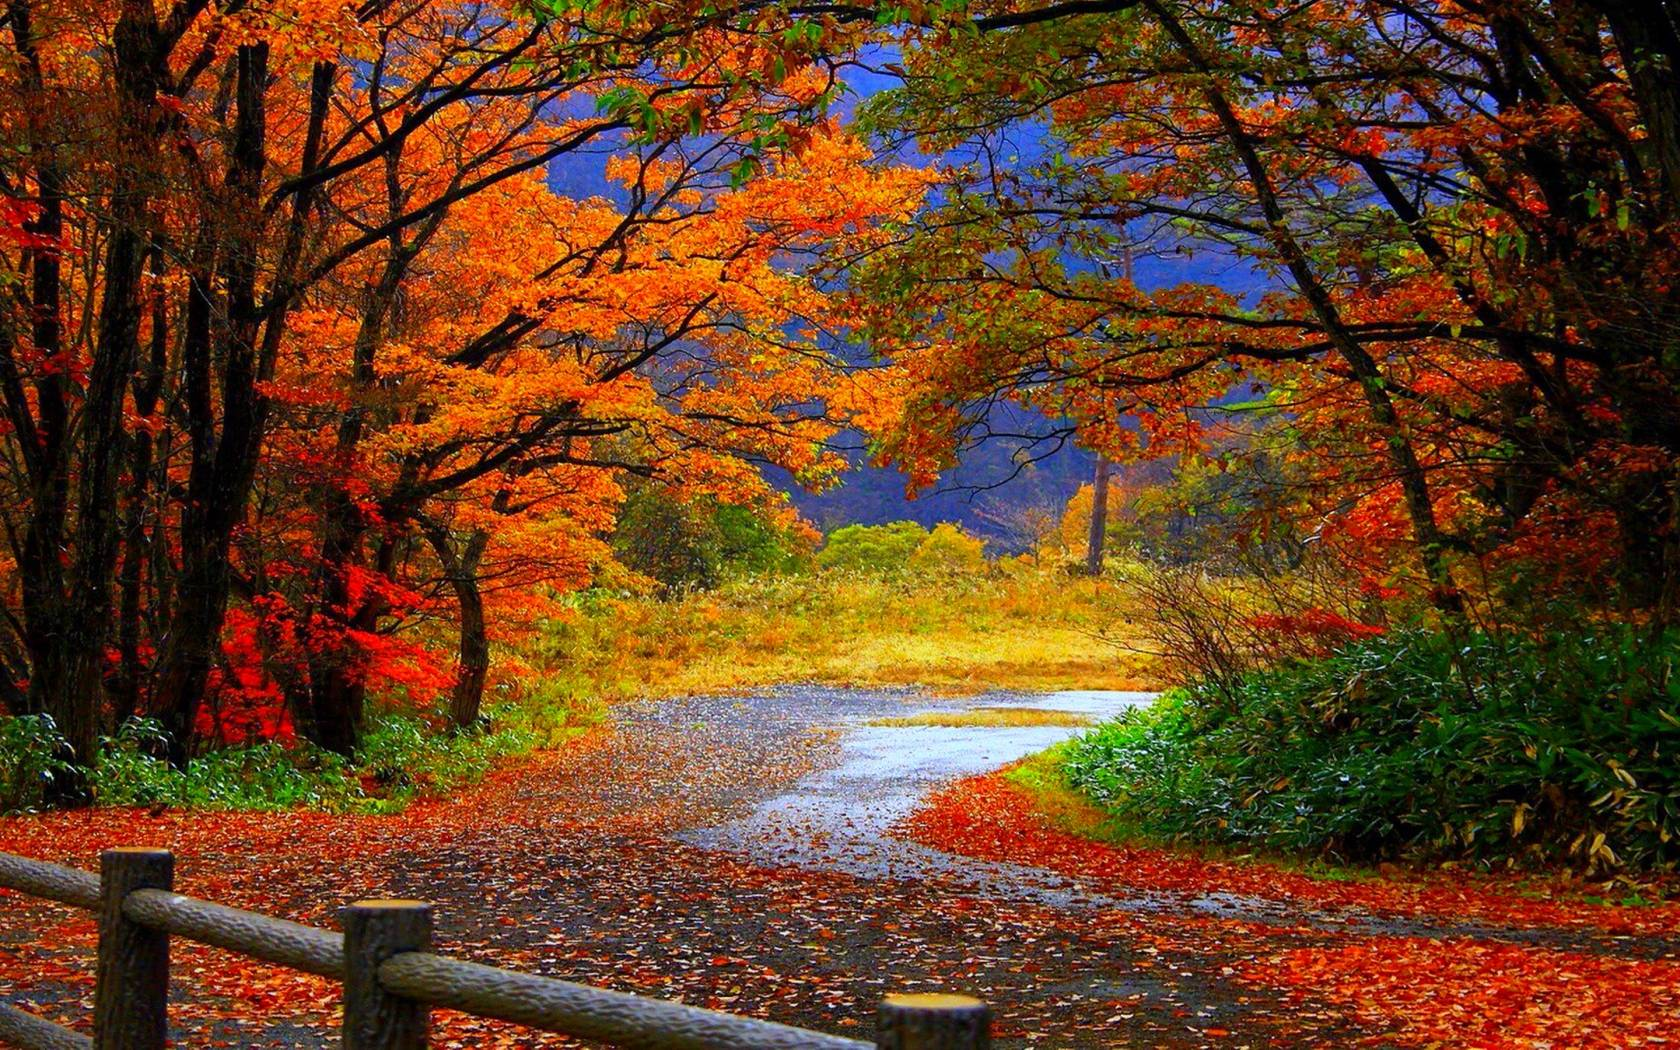 Falling Leaves Live Wallpaper For Android Top 6 Android Autumn Live Wallpapers To Enjoy Falling Leaves